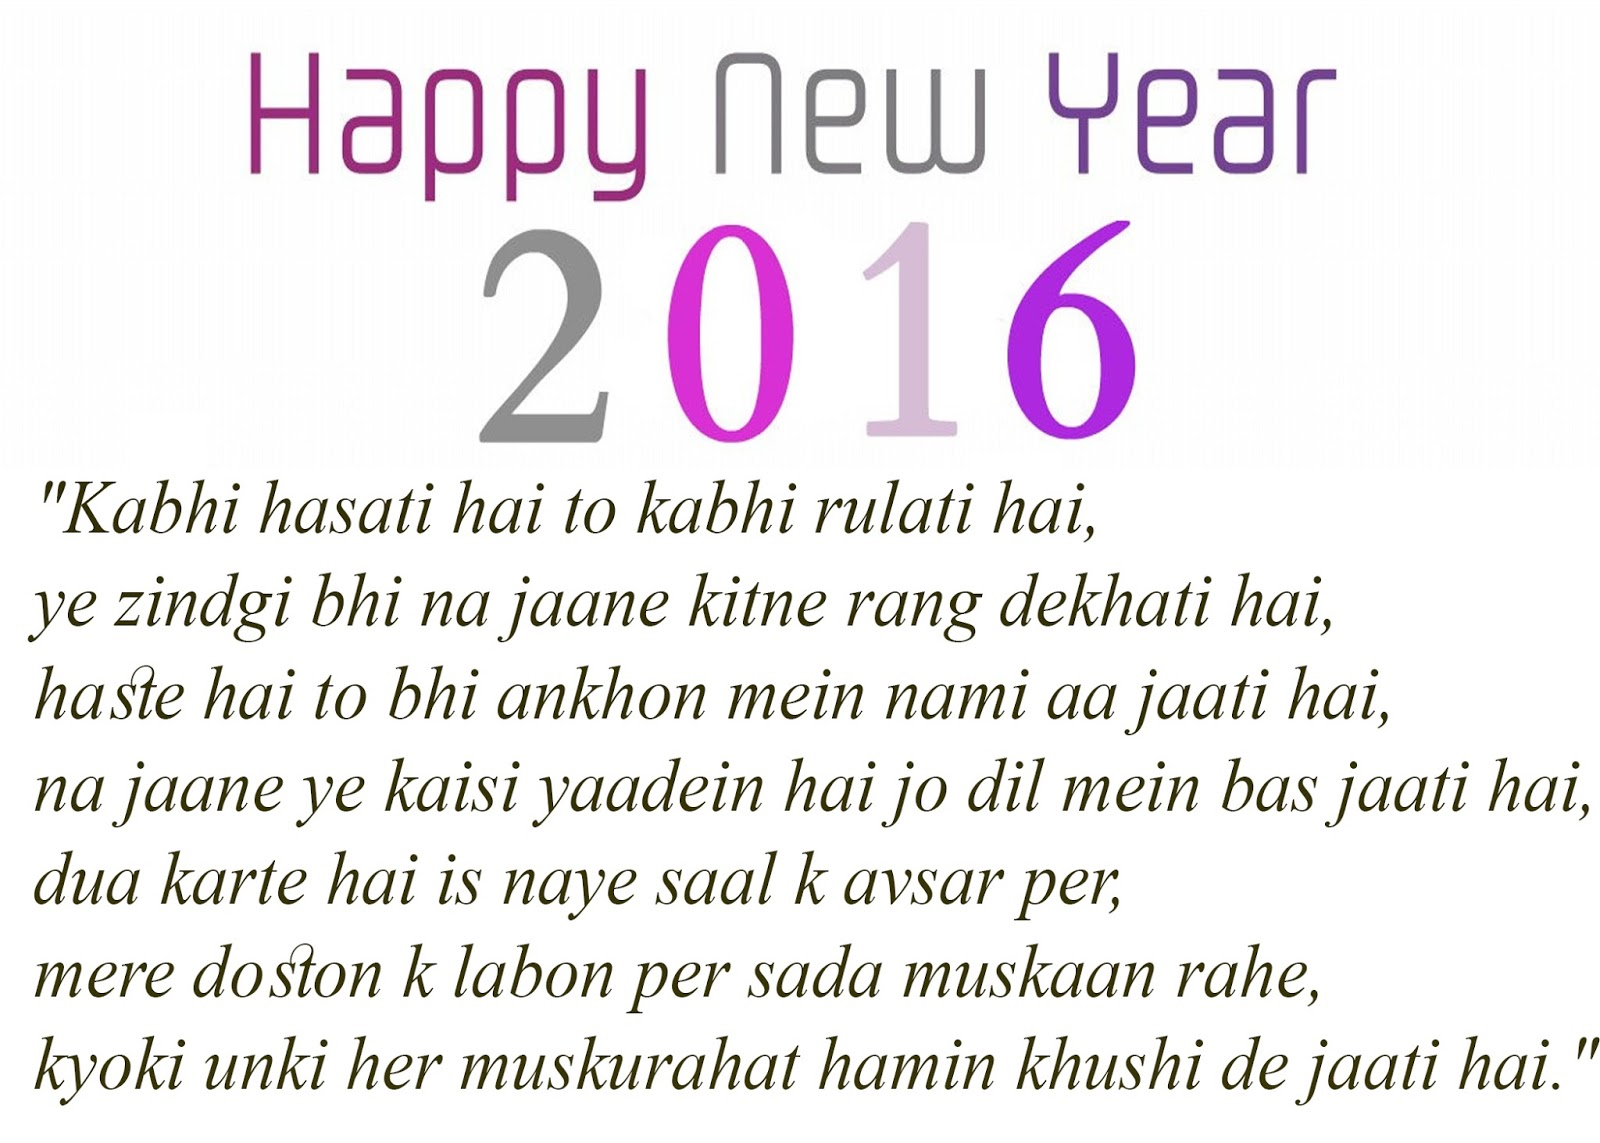 Happy new year sms messages hindi happy new year smshappy new year wishes hindihappy new year picture messages kristyandbryce Choice Image